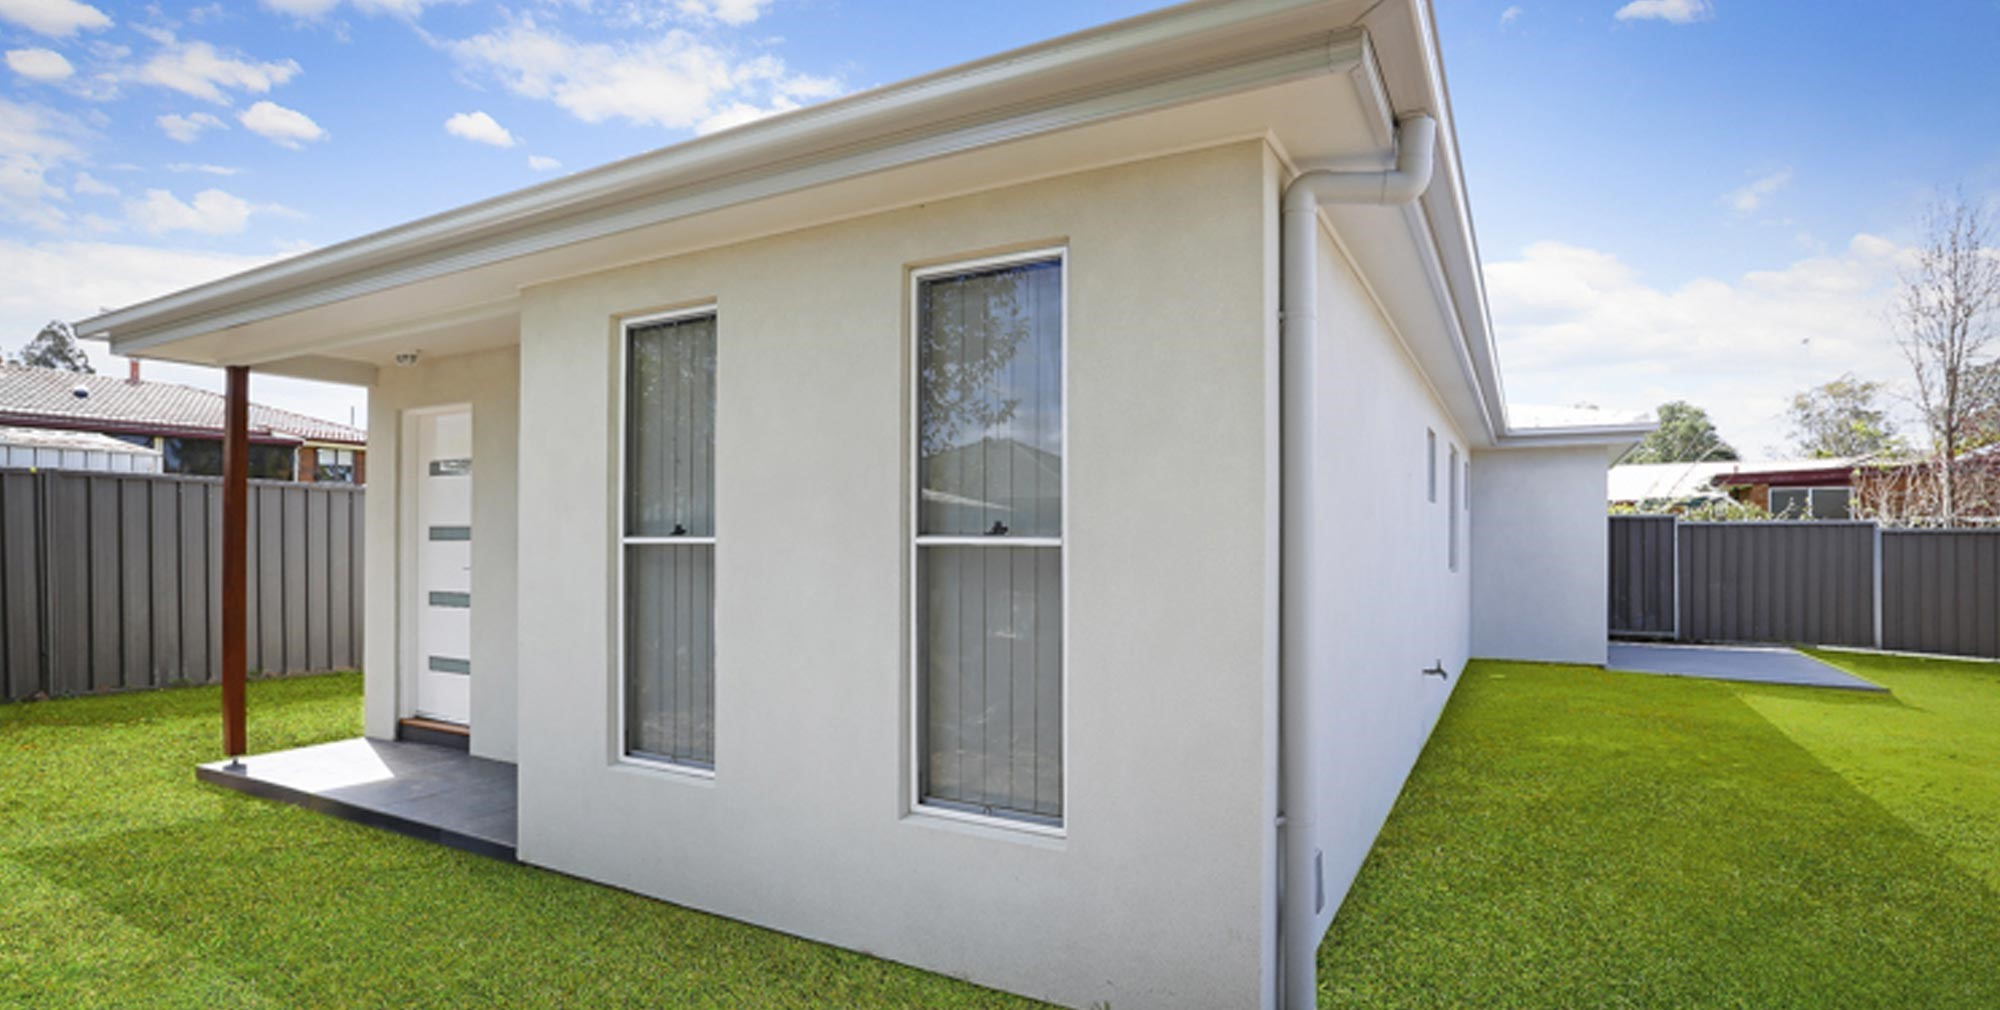 Home outlook planning and development - What to know before building a house ...